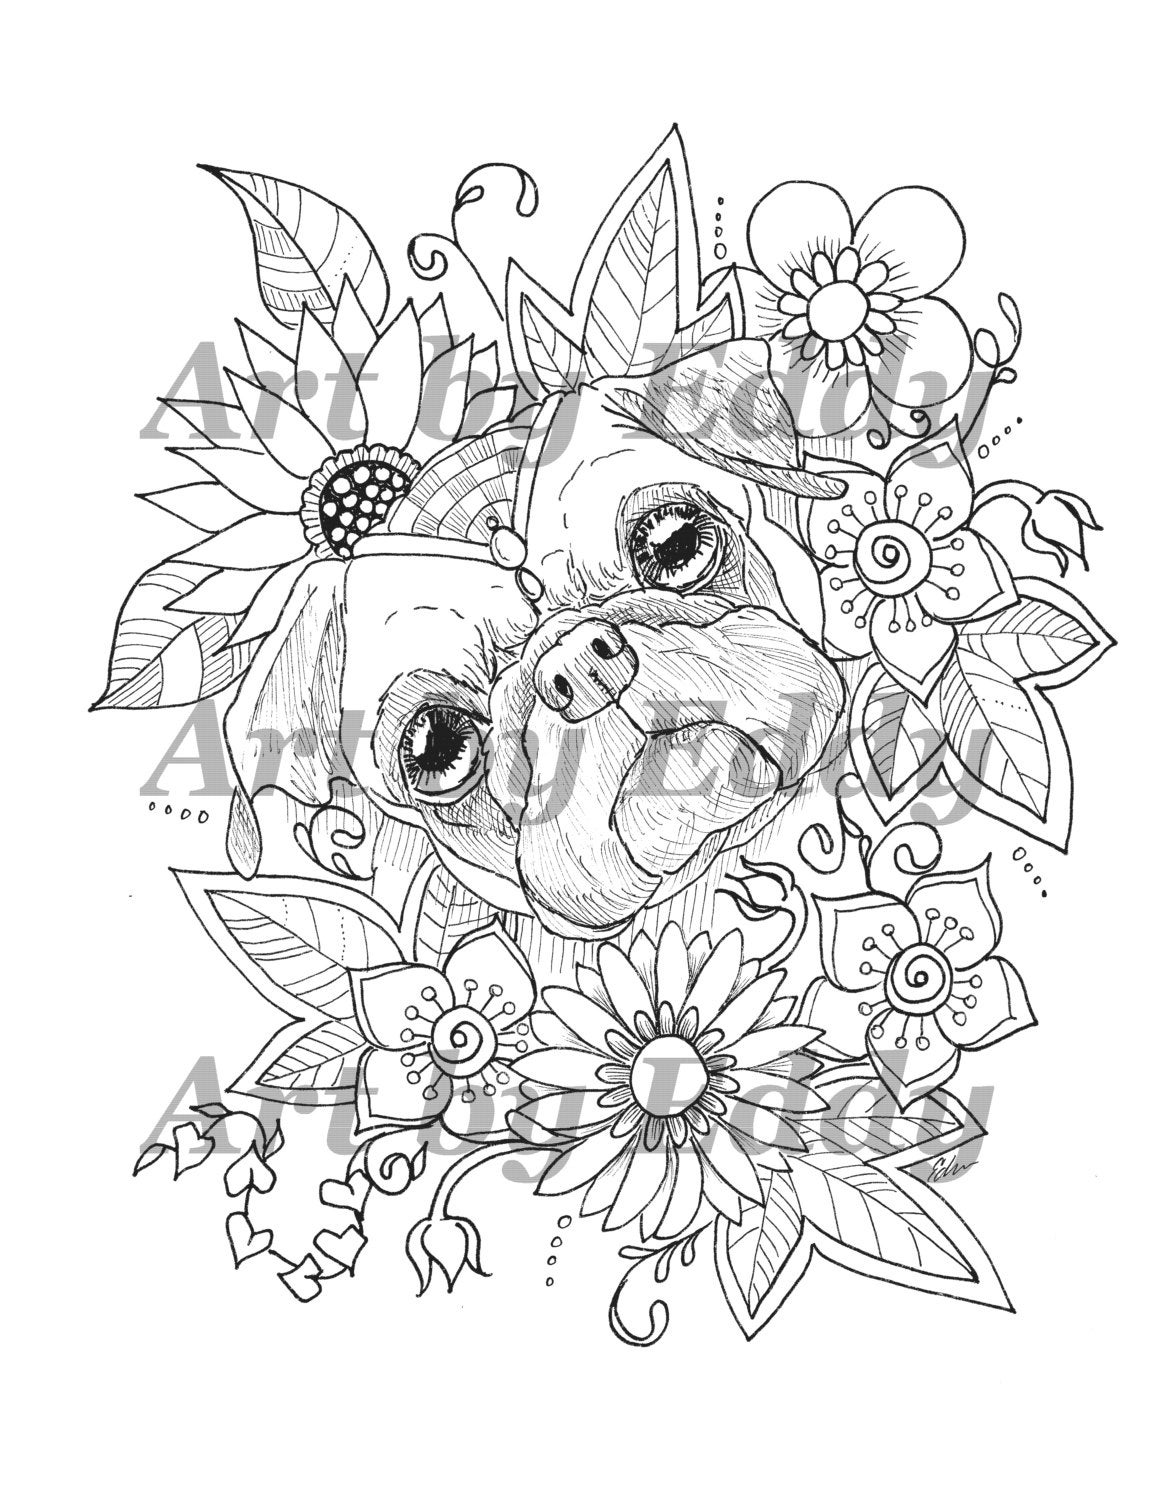 art of pug single coloring page sunflower pug